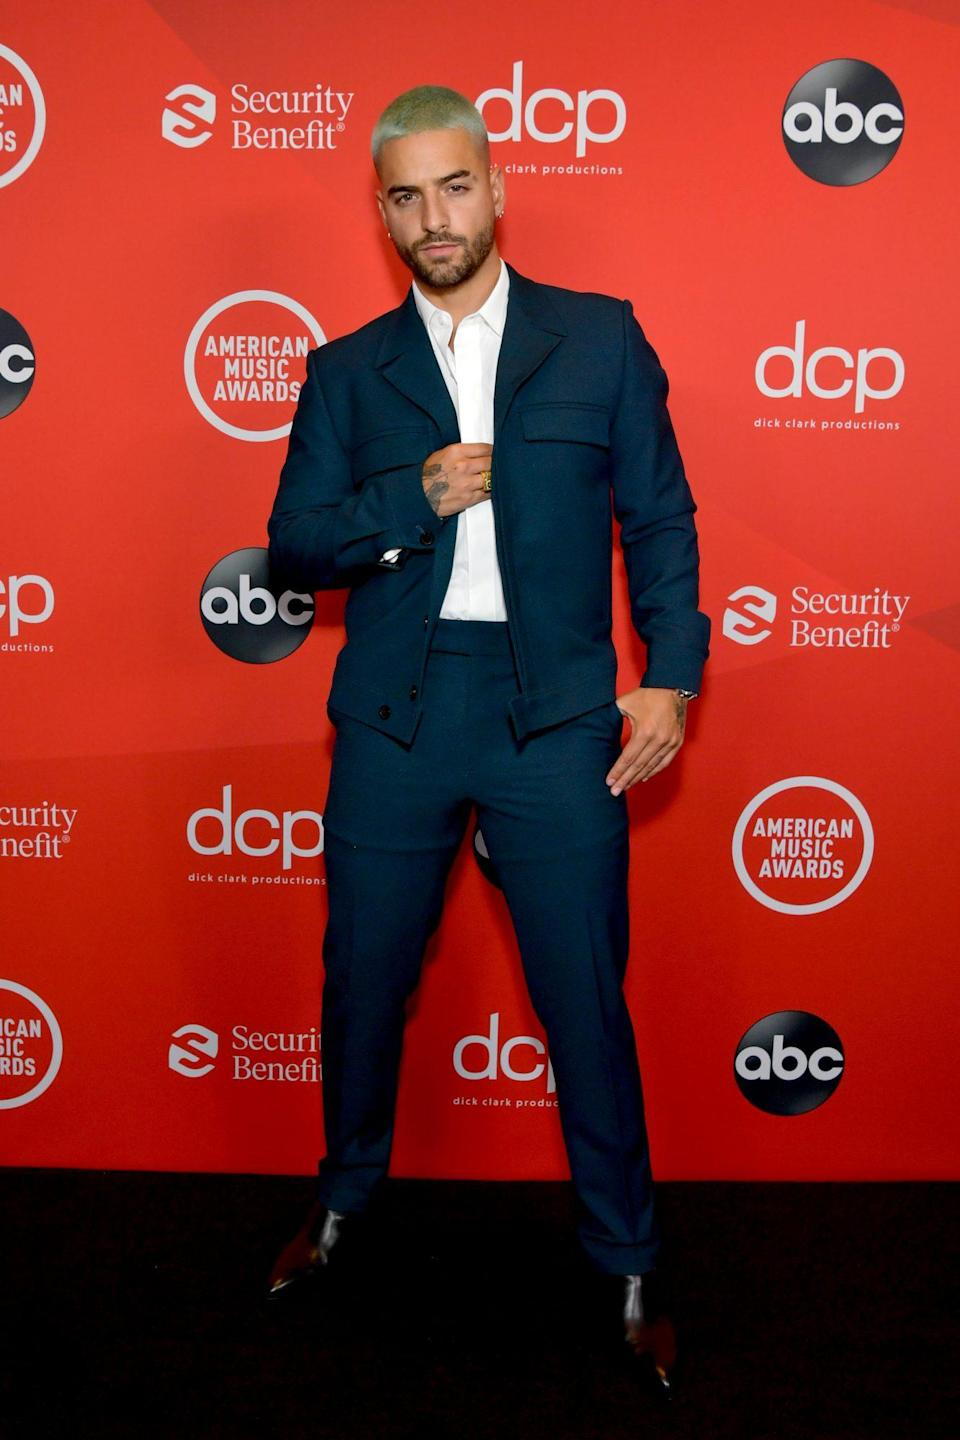 <p>Workwear meets formalwear in Maluma's twist on red carpet dressing, which blended cargo pockets with traditional tailoring.</p>